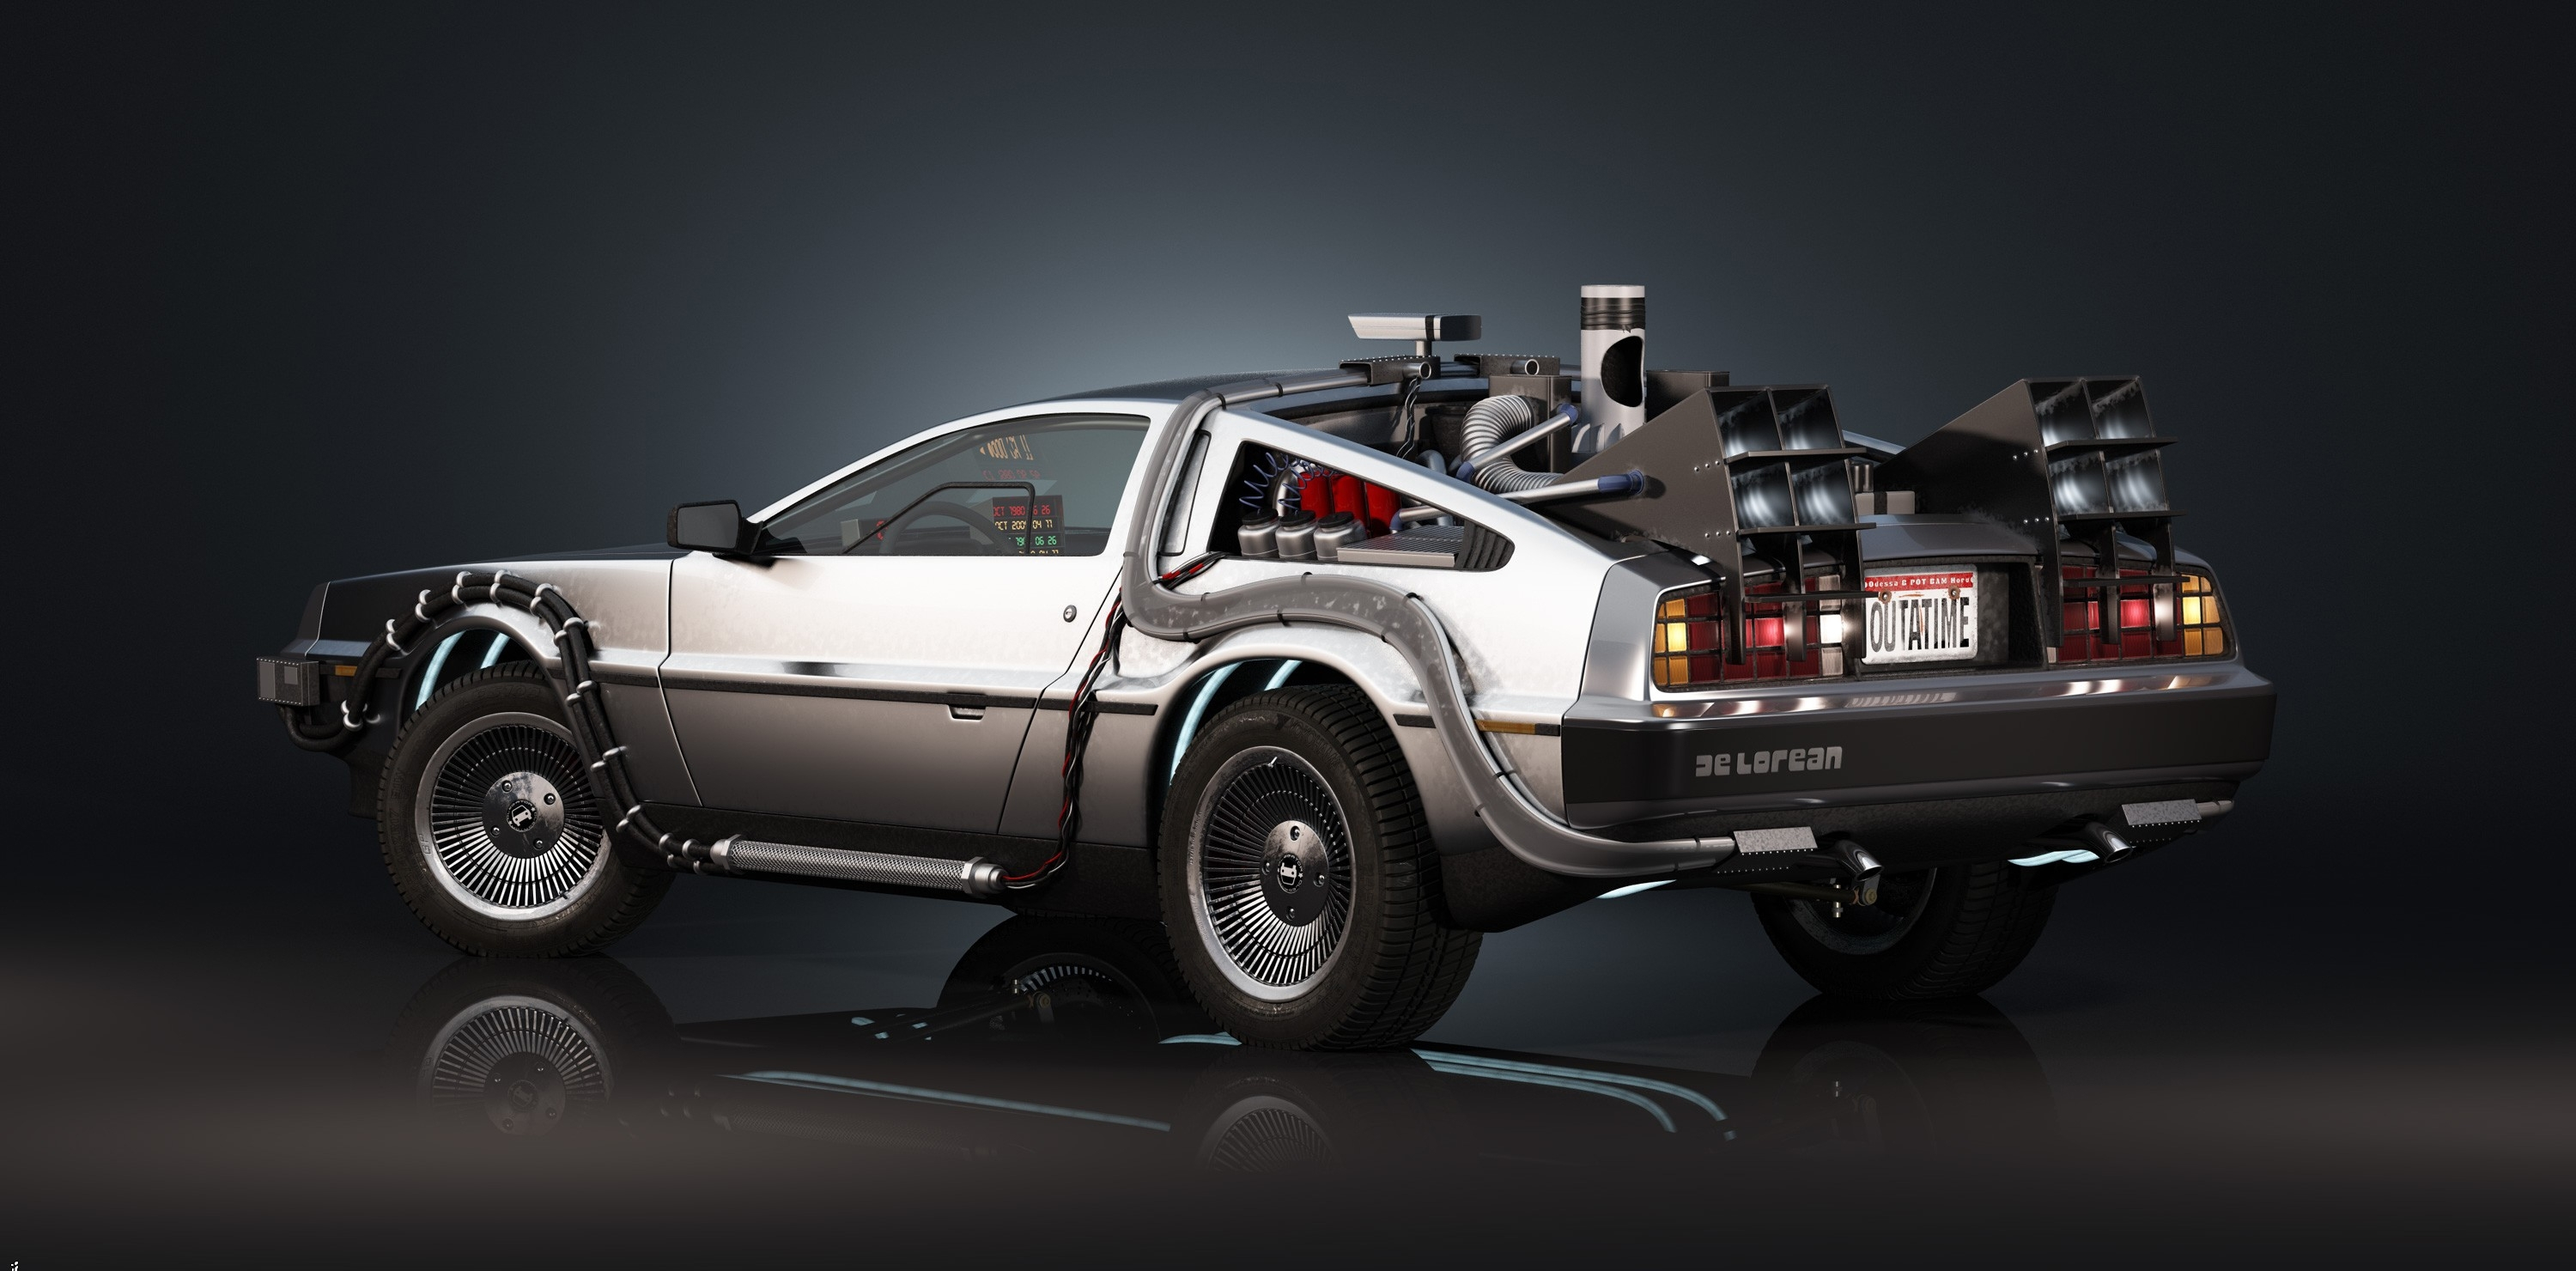 63 back to the future hd wallpapers | background images - wallpaper